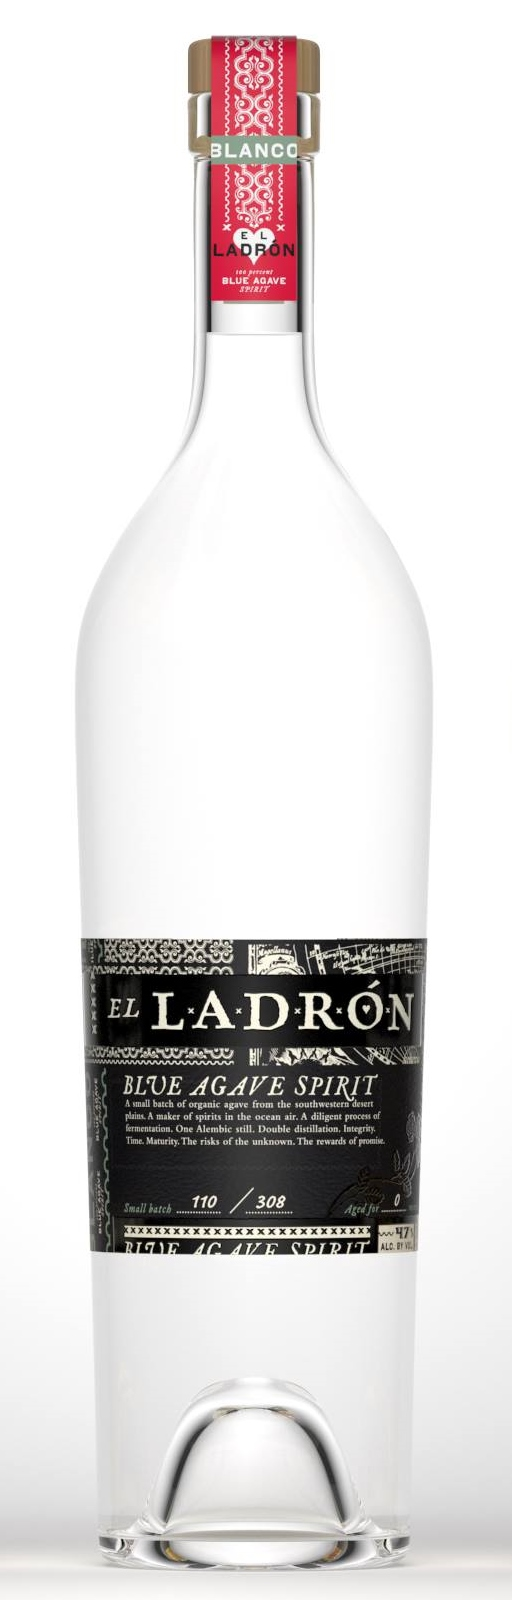 El Ladron Blanco - Photo by Chen Design Associates